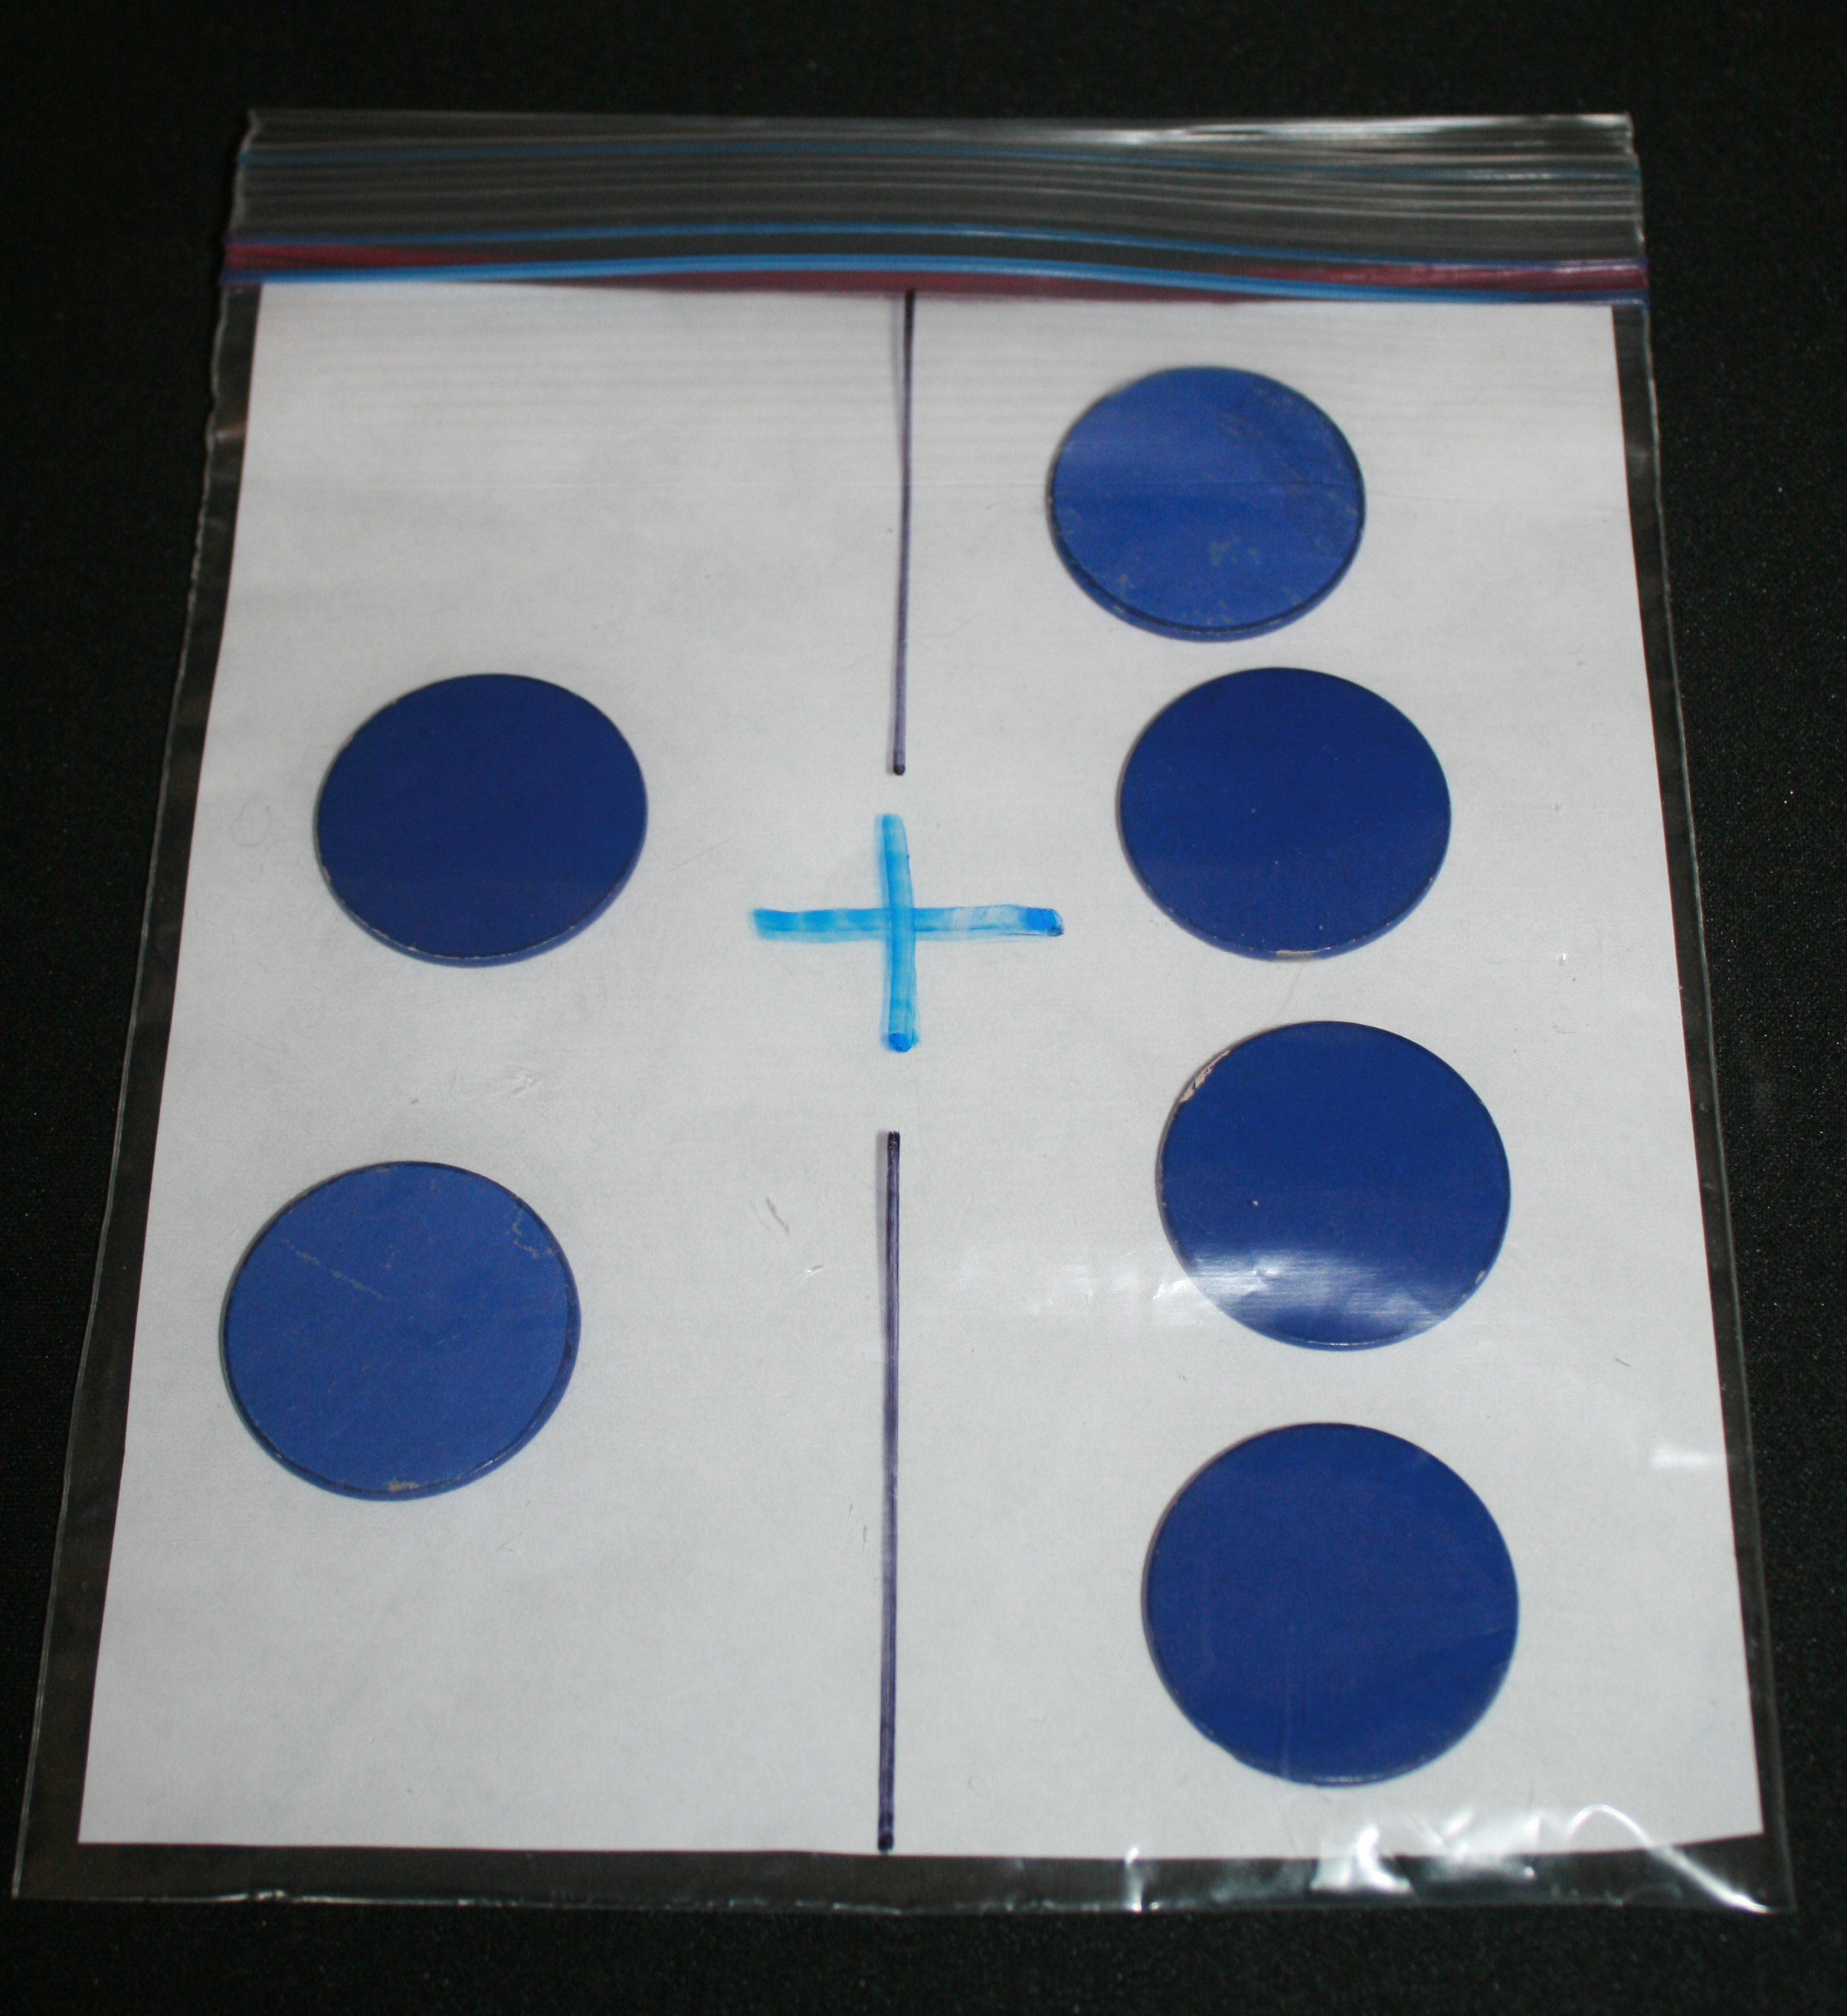 math games, addition math games, addition activities, addition lessons, addition ideas, playing dice games to teach adddtion, math manipulatives, hands on ideas for math, addition bead bracelets, addition manipulative baggies, math baggies,